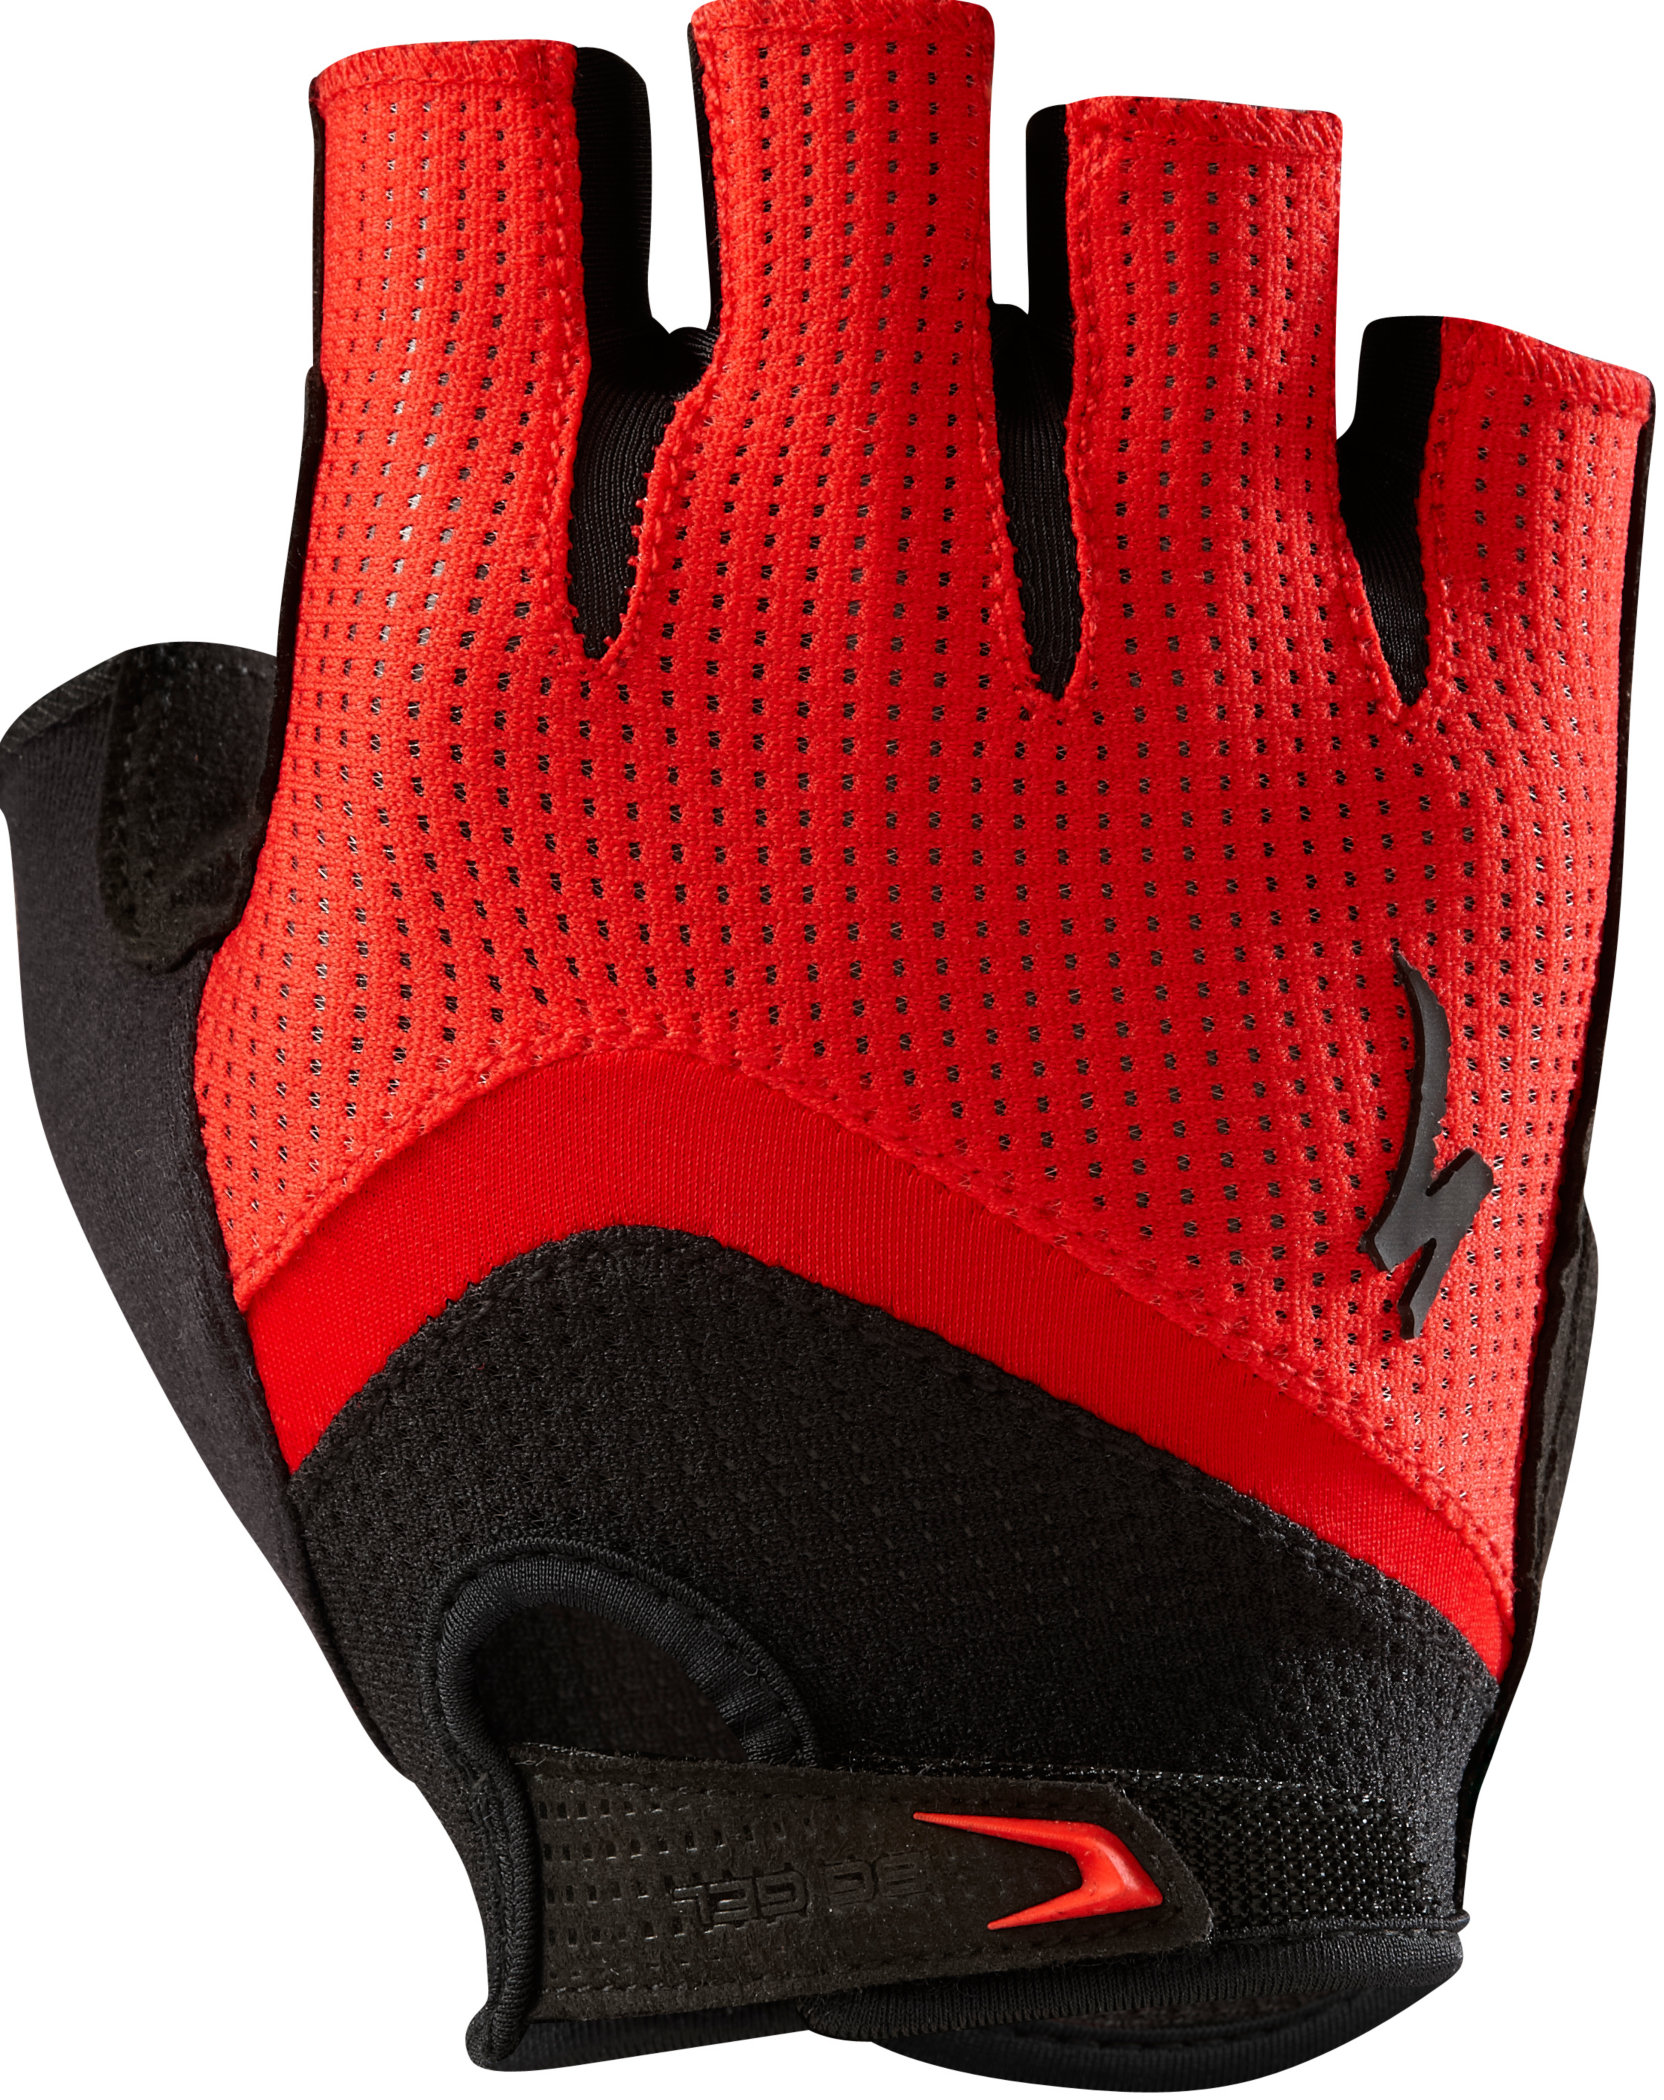 SPECIALIZED BG GEL GLOVE SF RED/BLK L - Alpha Bikes